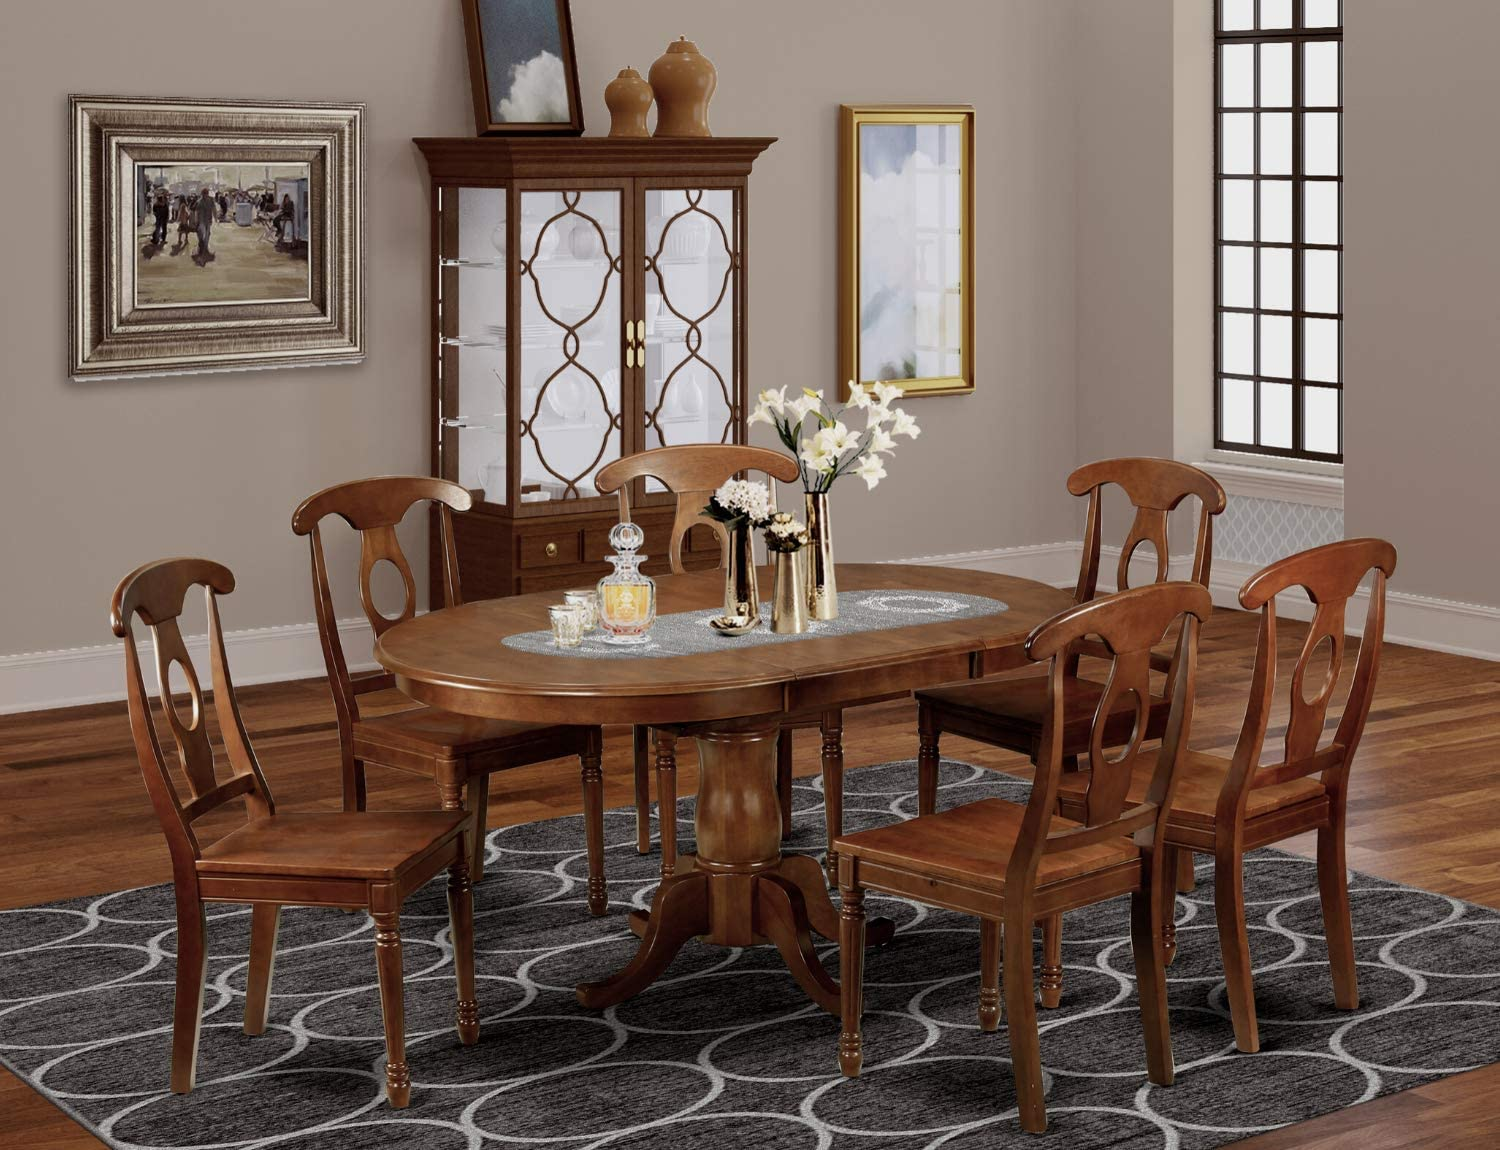 9 Pc Dining room set Oval Dining Table with Leaf and 9 Chairs